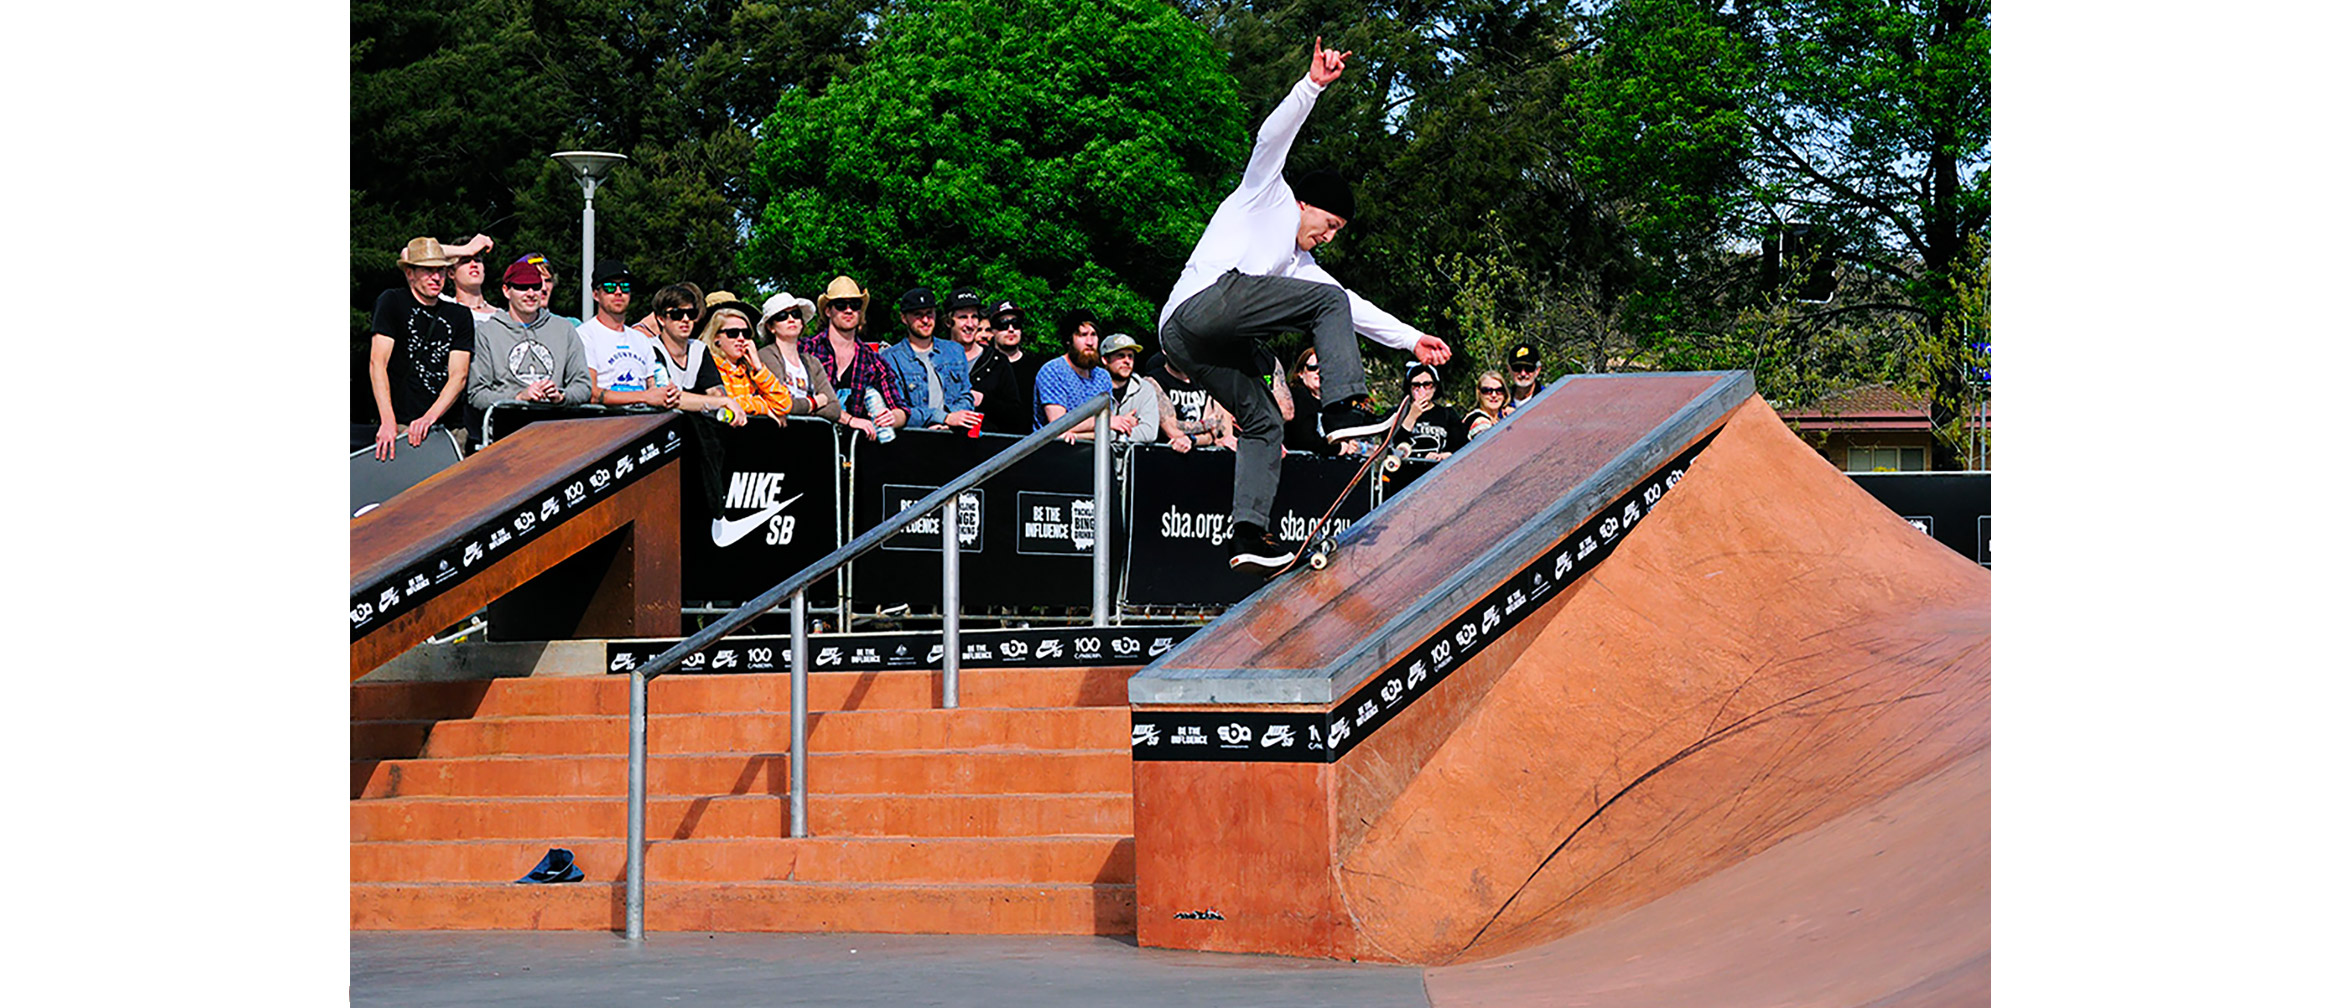 Bjorn Johnston switch fs blunt slide Belconnen hubba